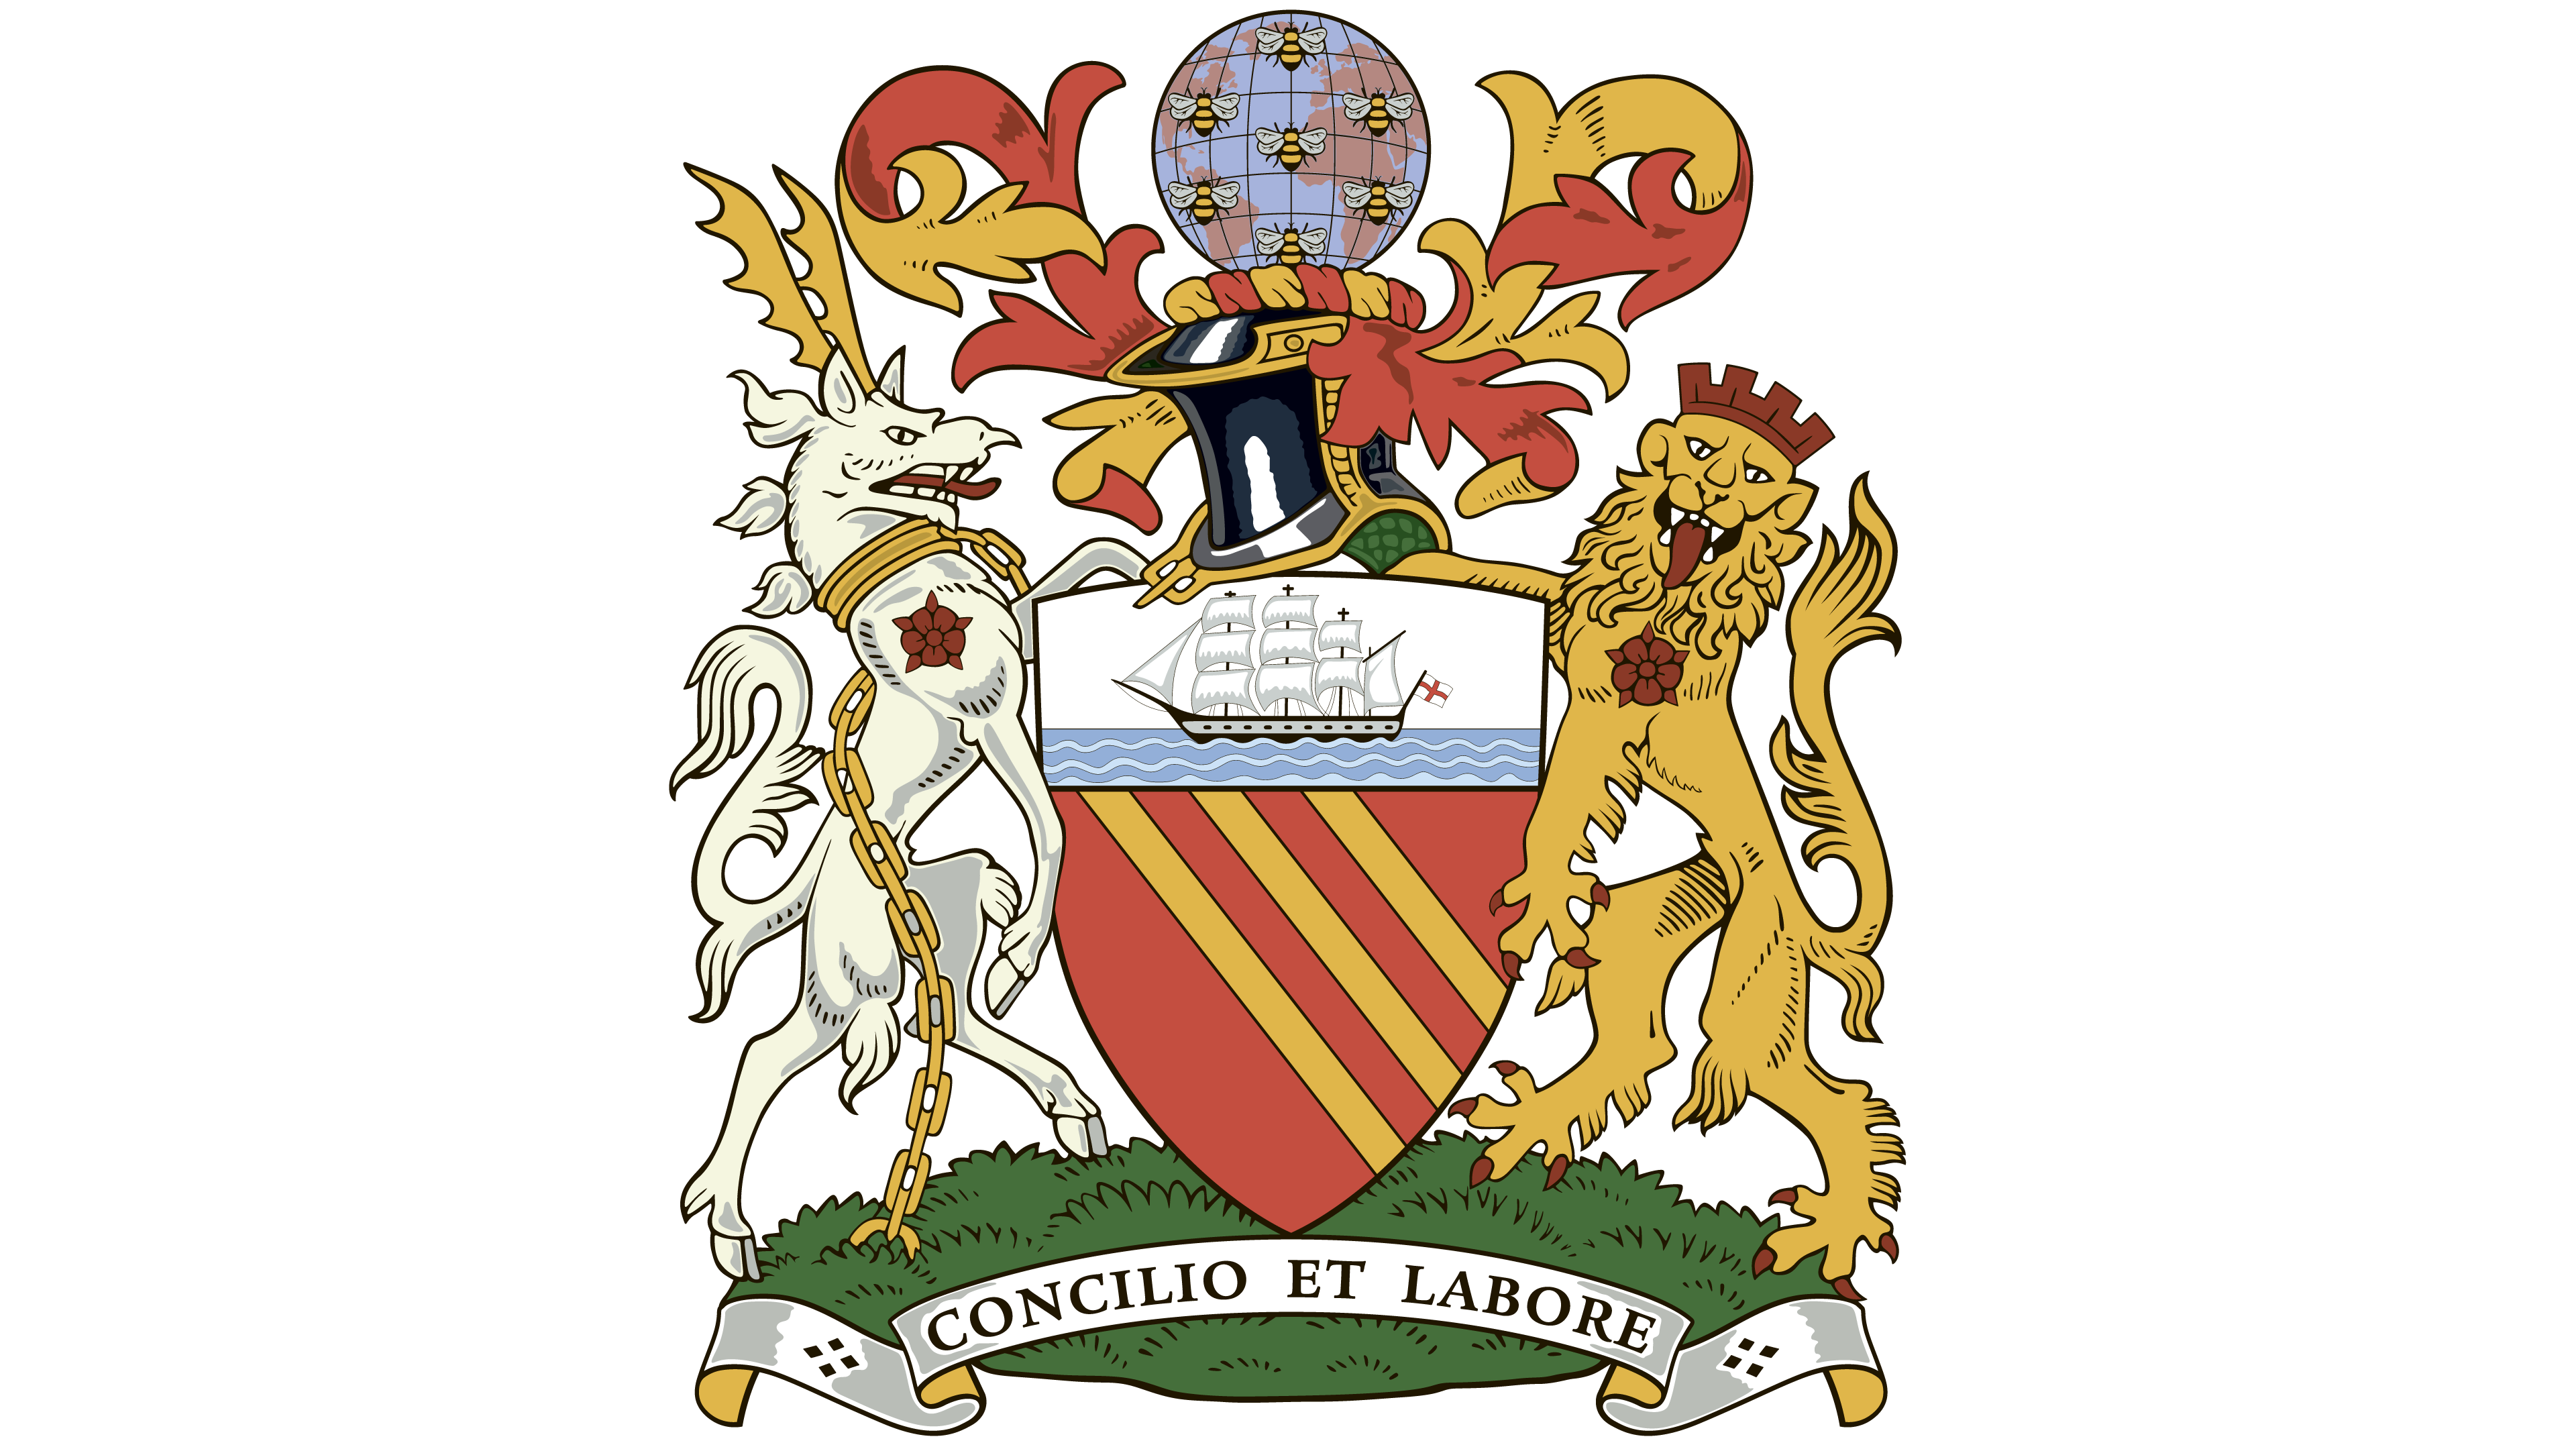 Manchester interesting history of. Man city logo png png royalty free download